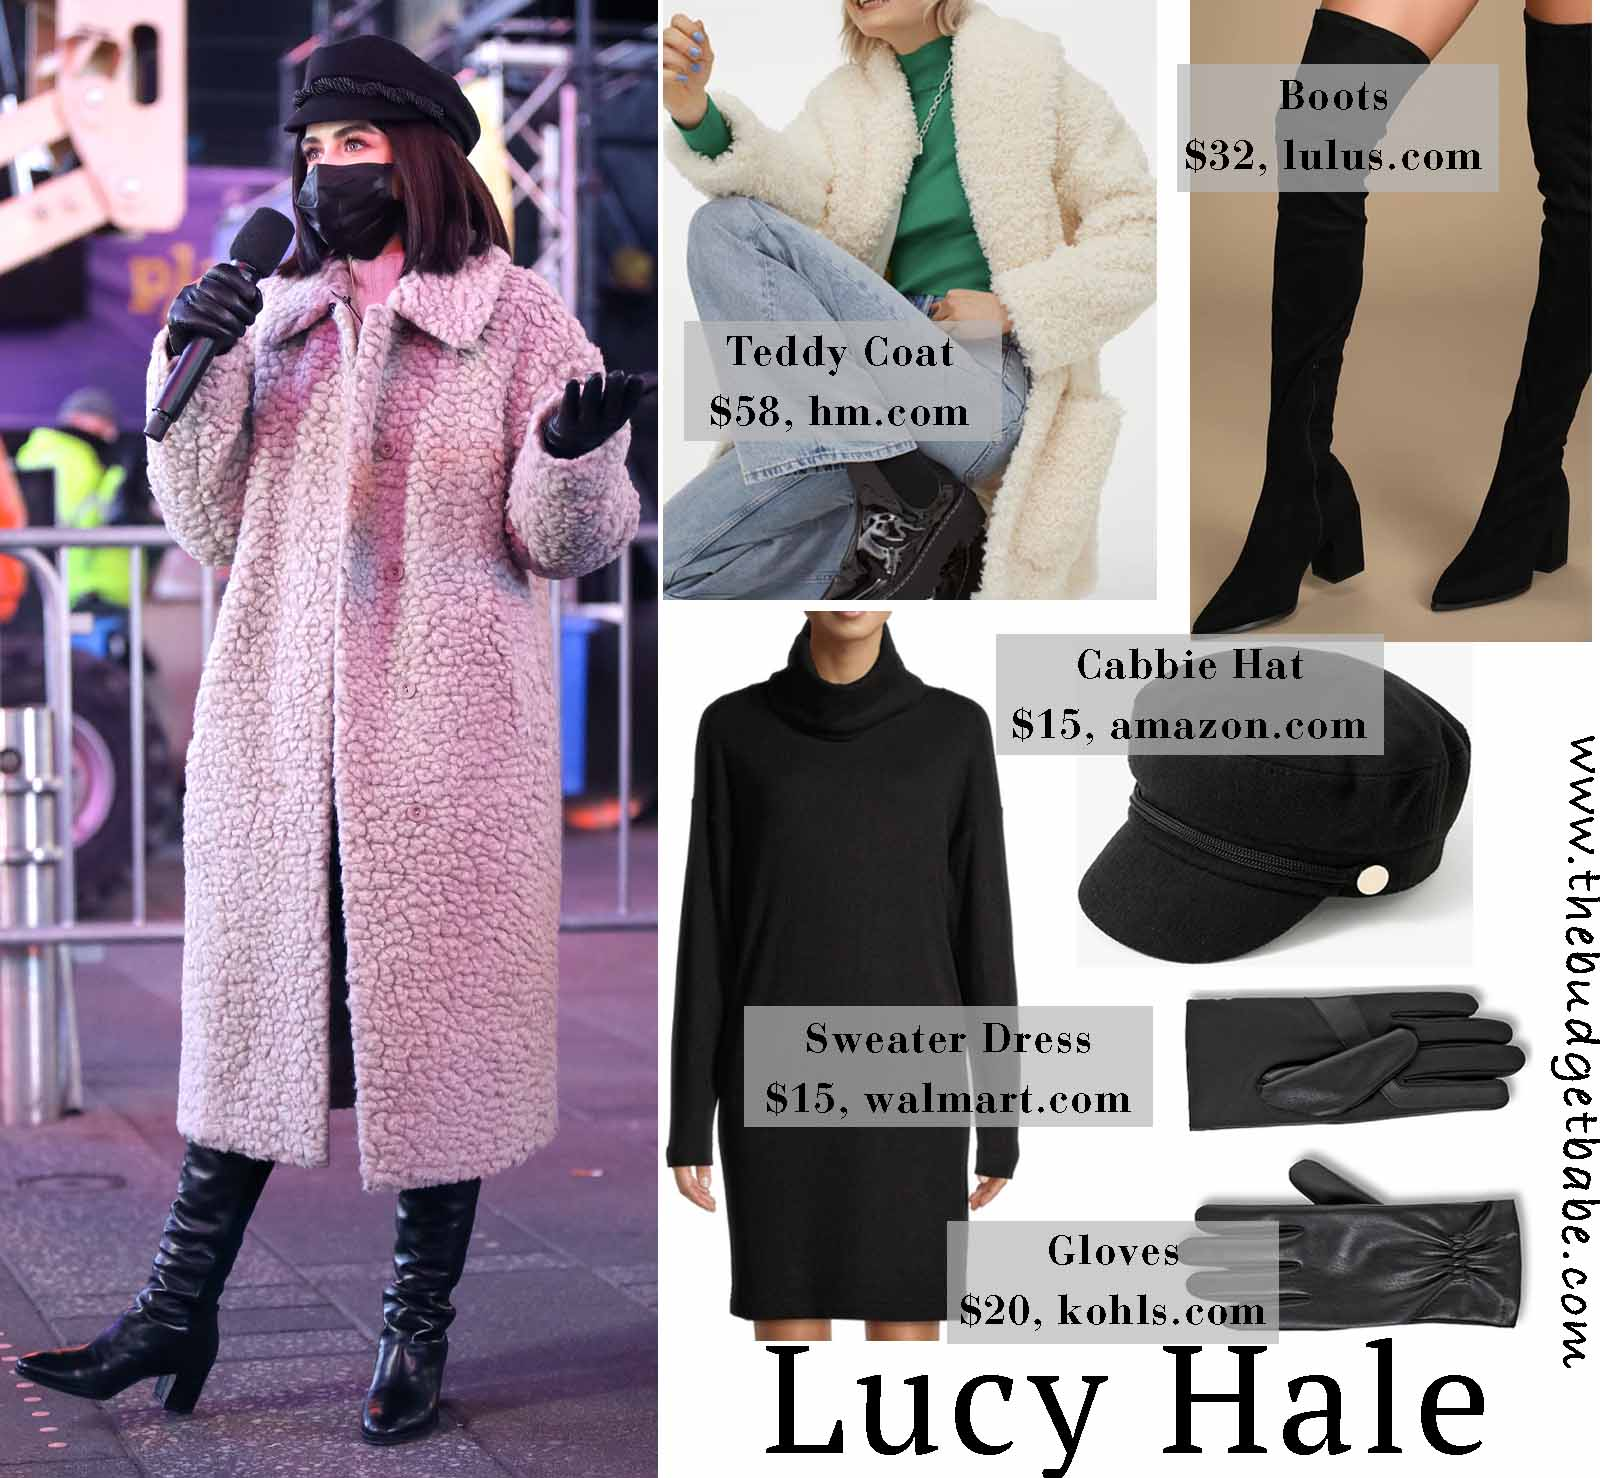 Lucy's outerwear looks so cozy!